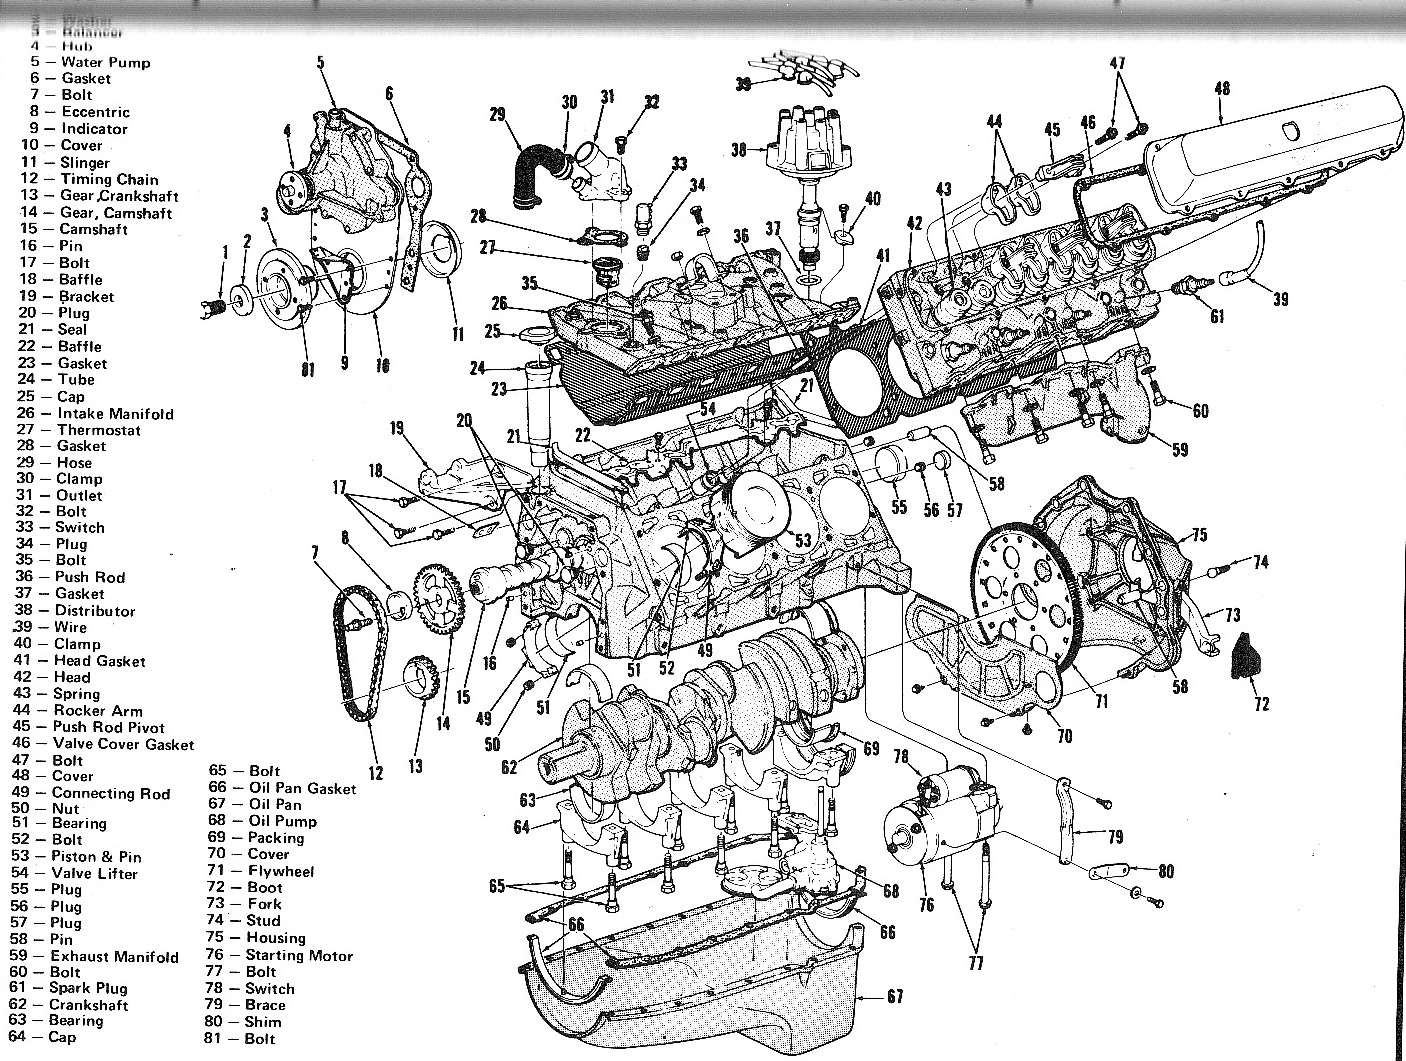 Automotive Engine Wiring Diagram : How can get full engine diagrams grabcad questions